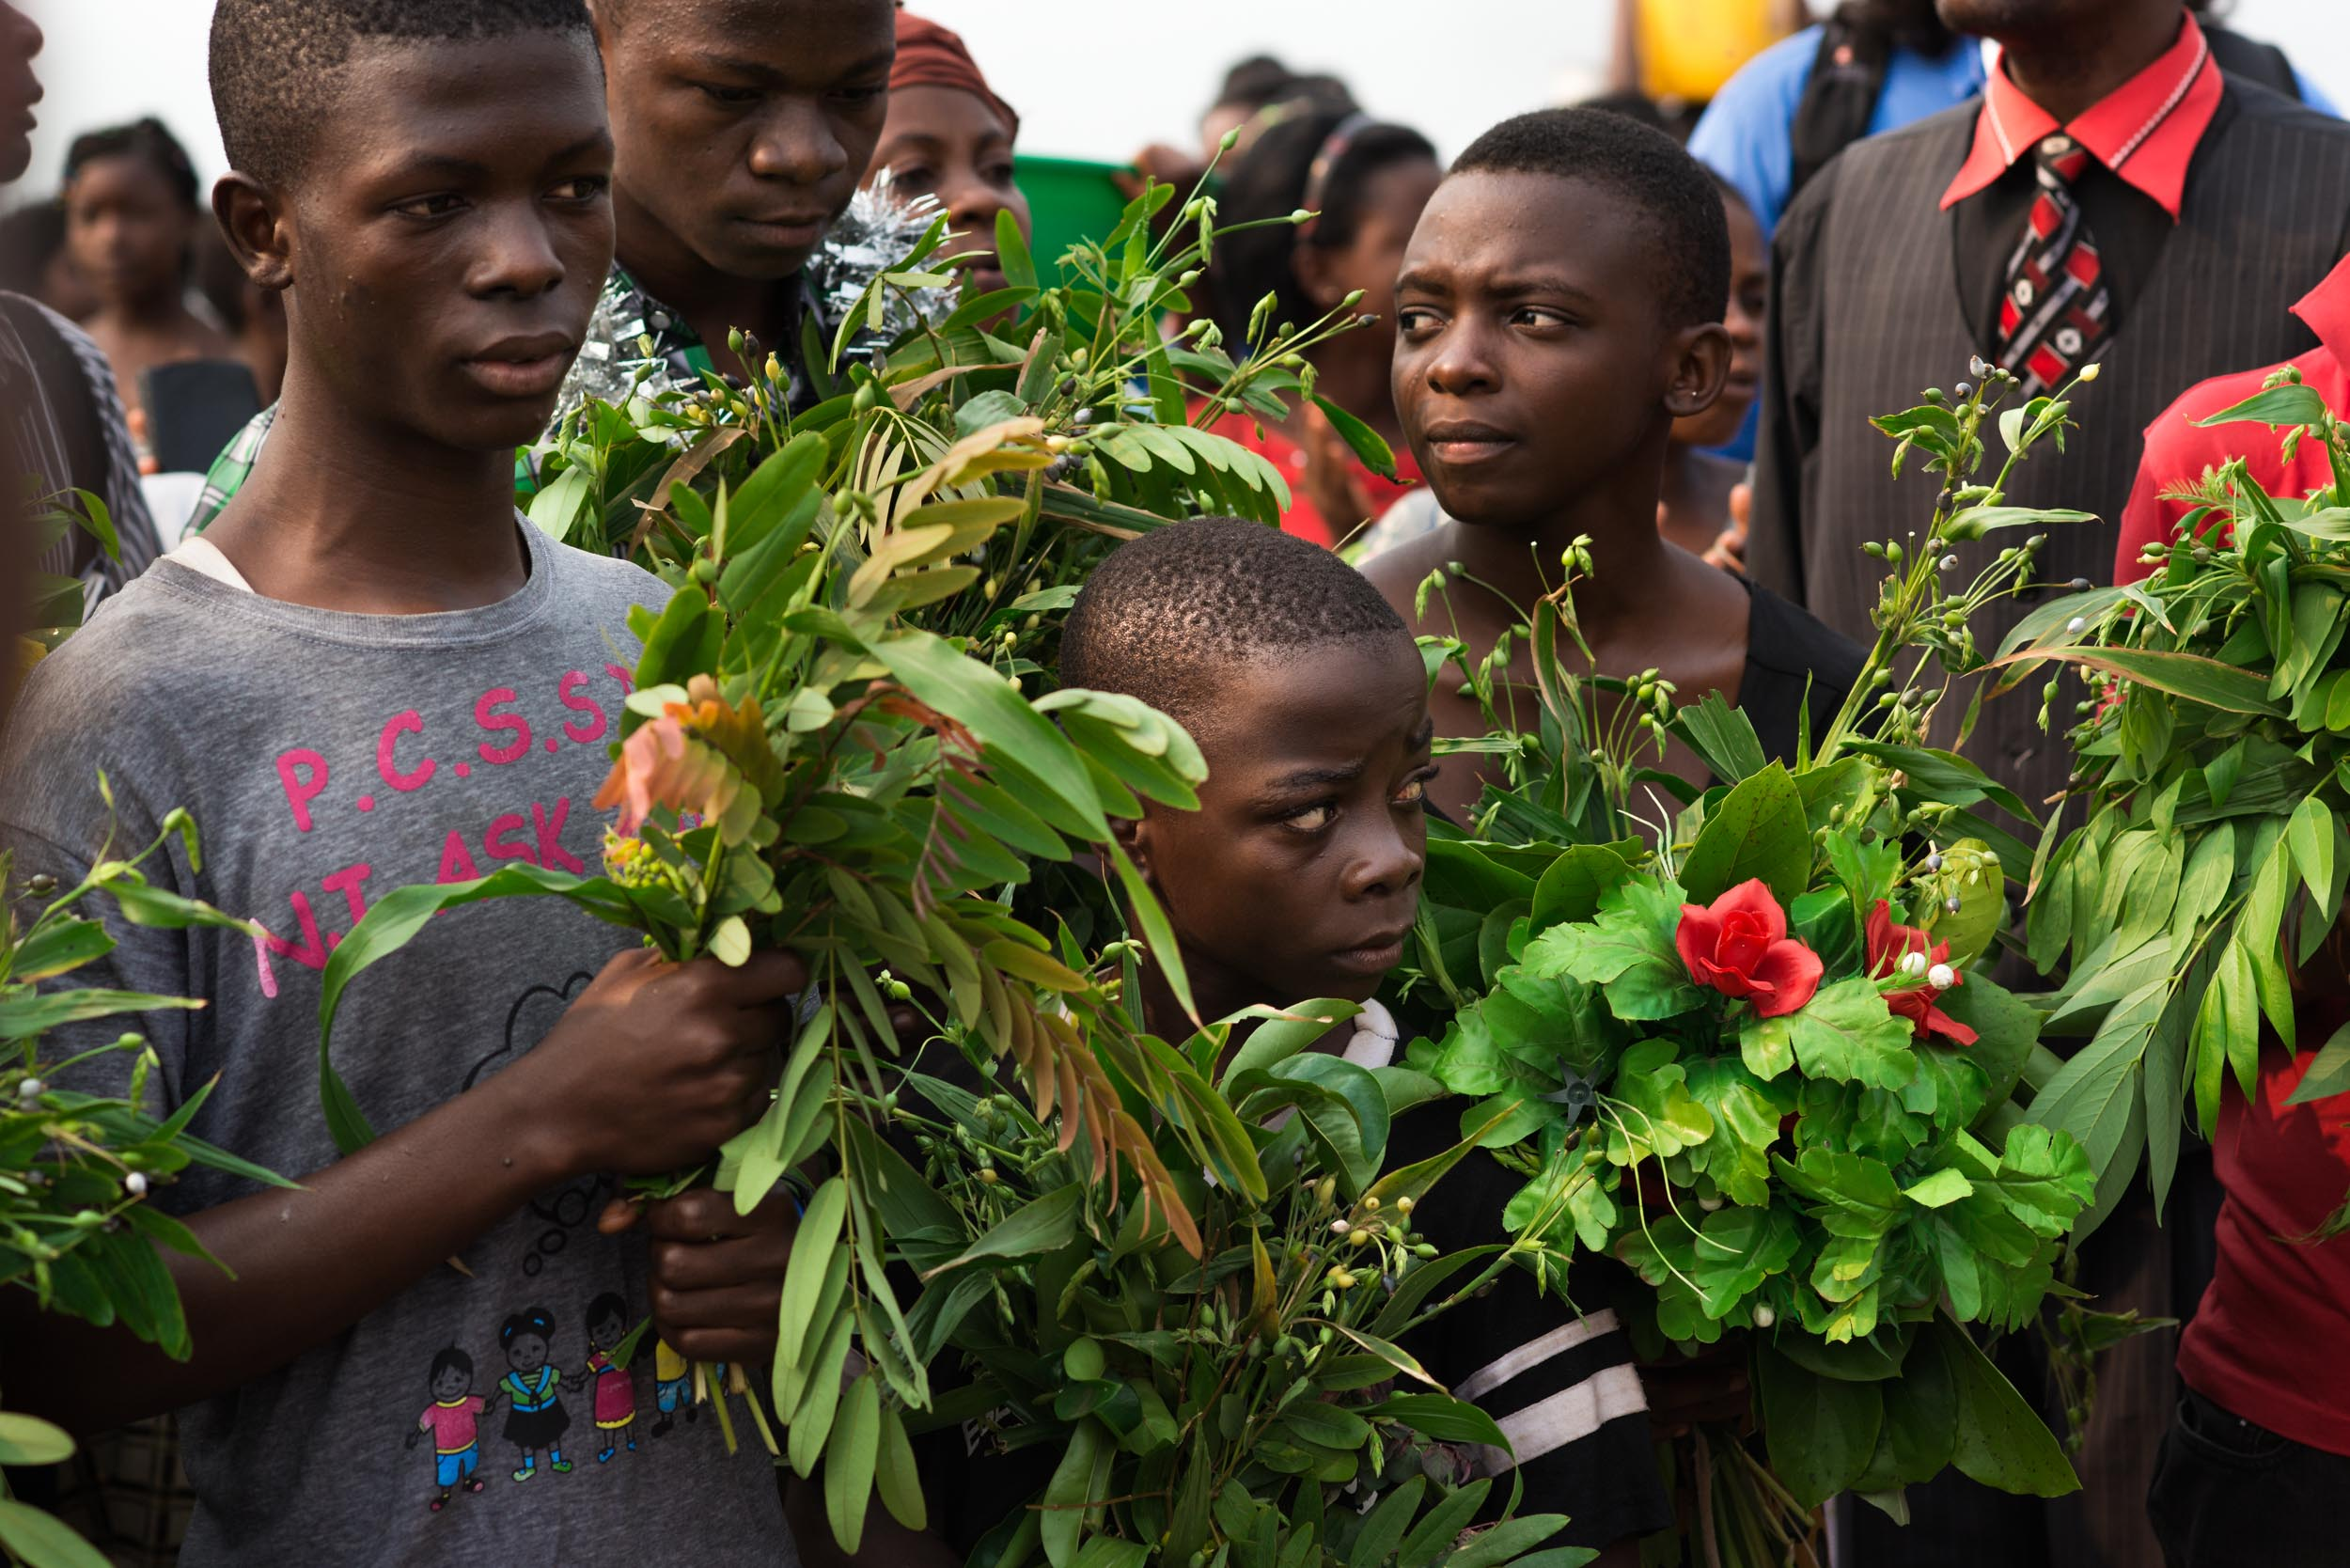 Hariza Kidoge (center) stands hidden among bouquets of local plants on the shore of Lake Tanganyika. On this day, he and five other orphans were baptized in the early morning by their faith leaders.